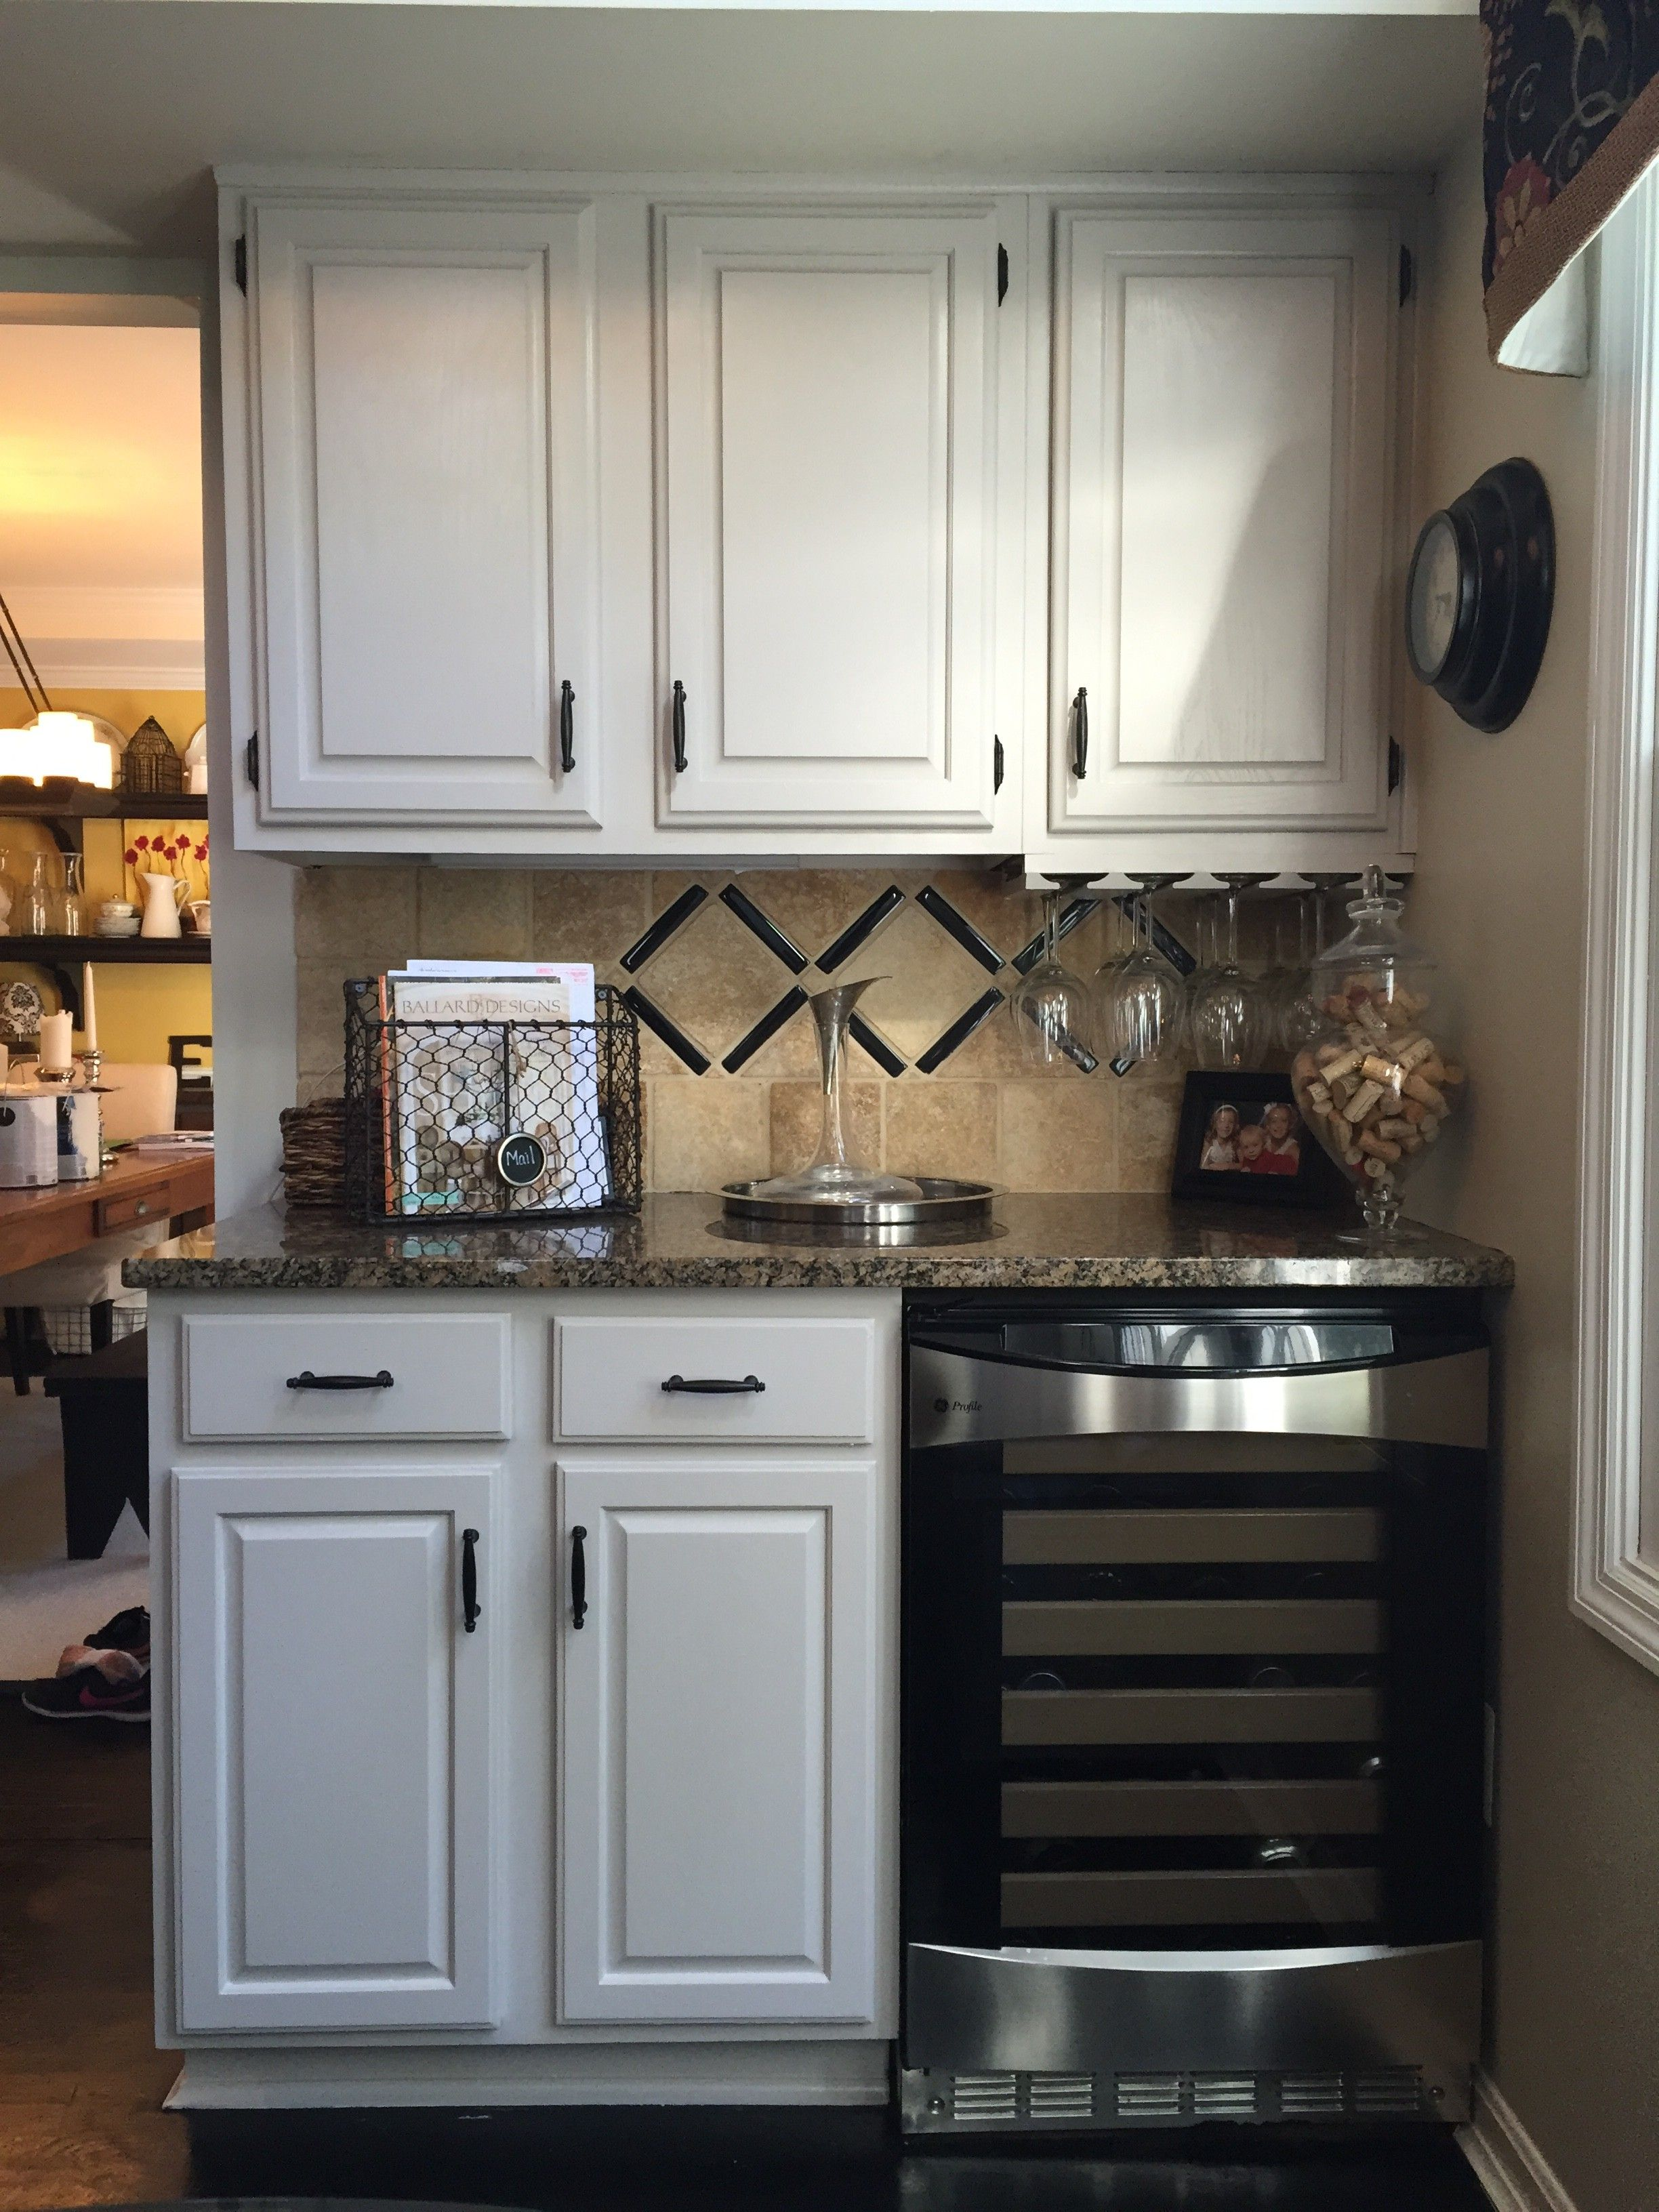 Step by Step instructions to DIY Painted Kitchen Cabinets